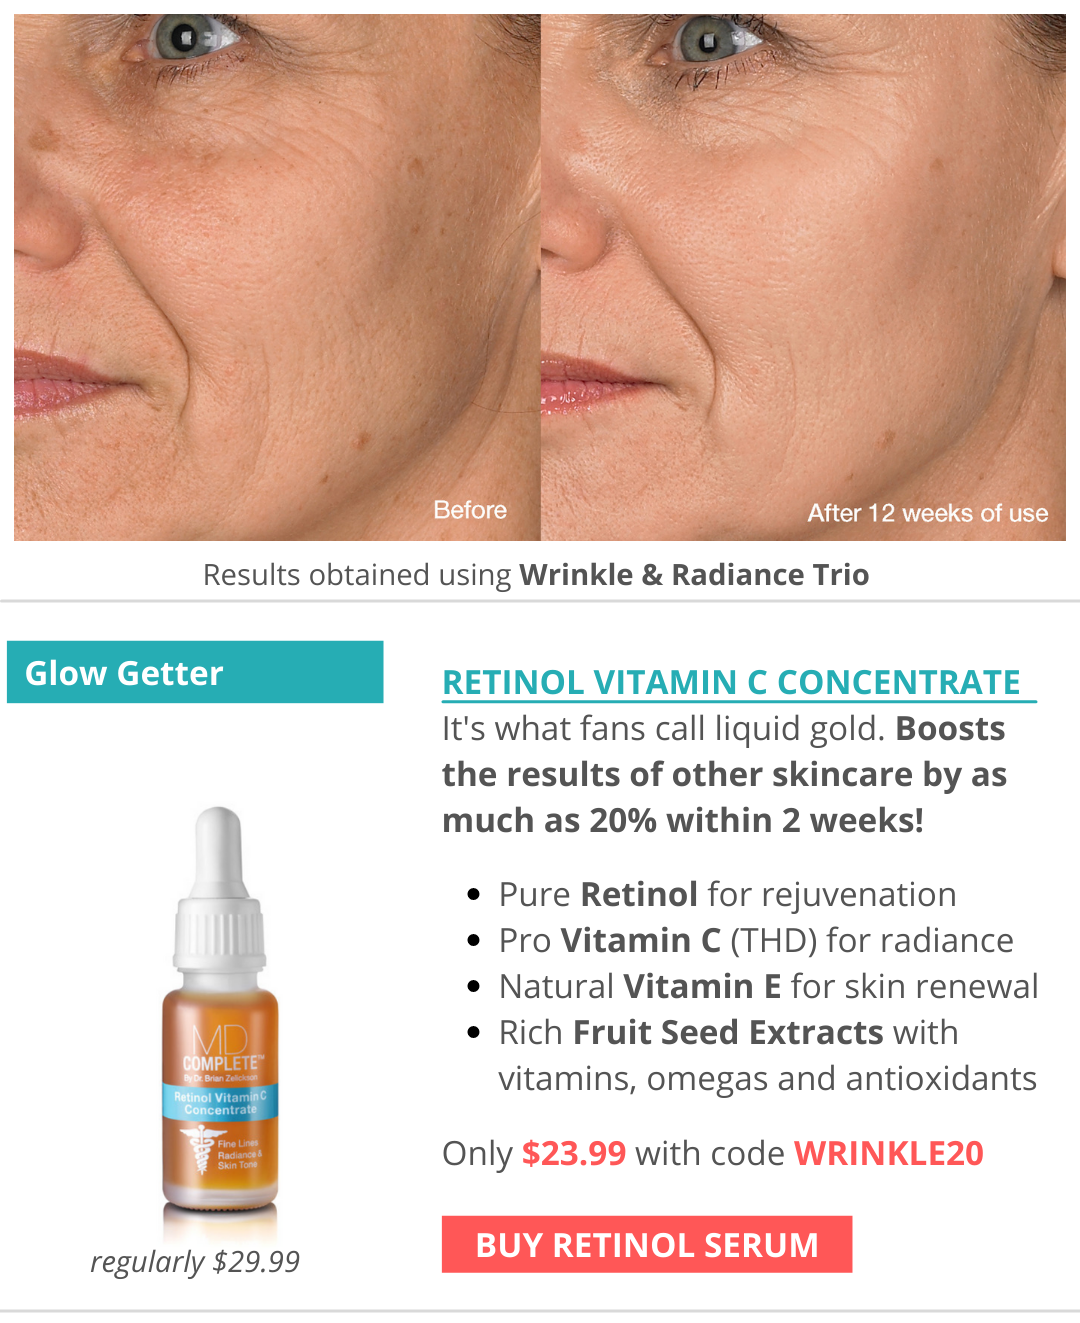 Boosts the results of other skincare by as much as 20% within 2 weeks!